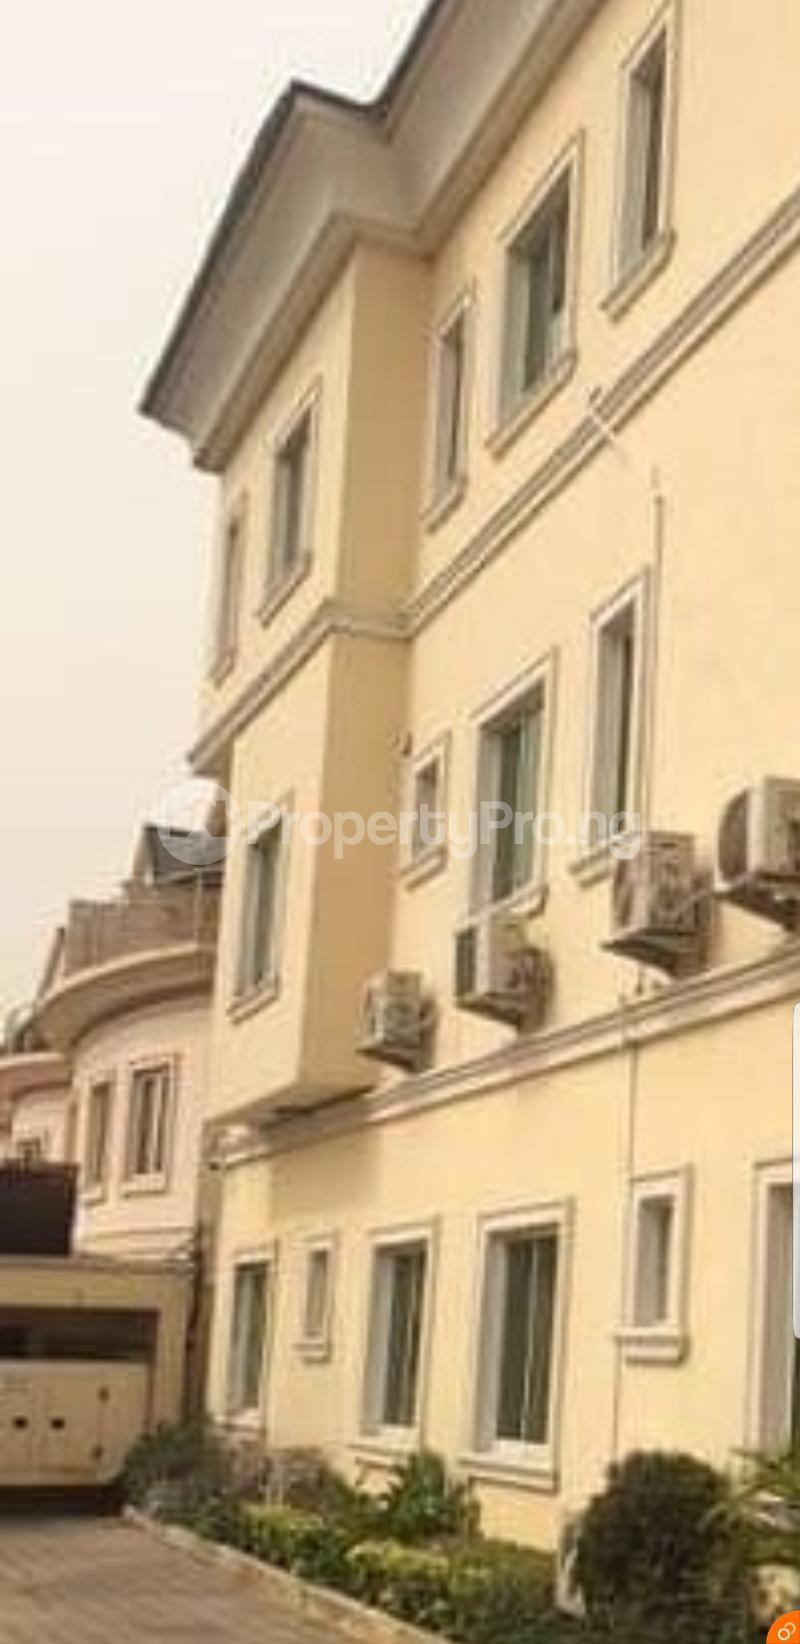 5 bedroom Semi Detached Duplex House for sale Olori Mojisola Onikoyi, Ikoyi, Lagos.  Mojisola Onikoyi Estate Ikoyi Lagos - 0